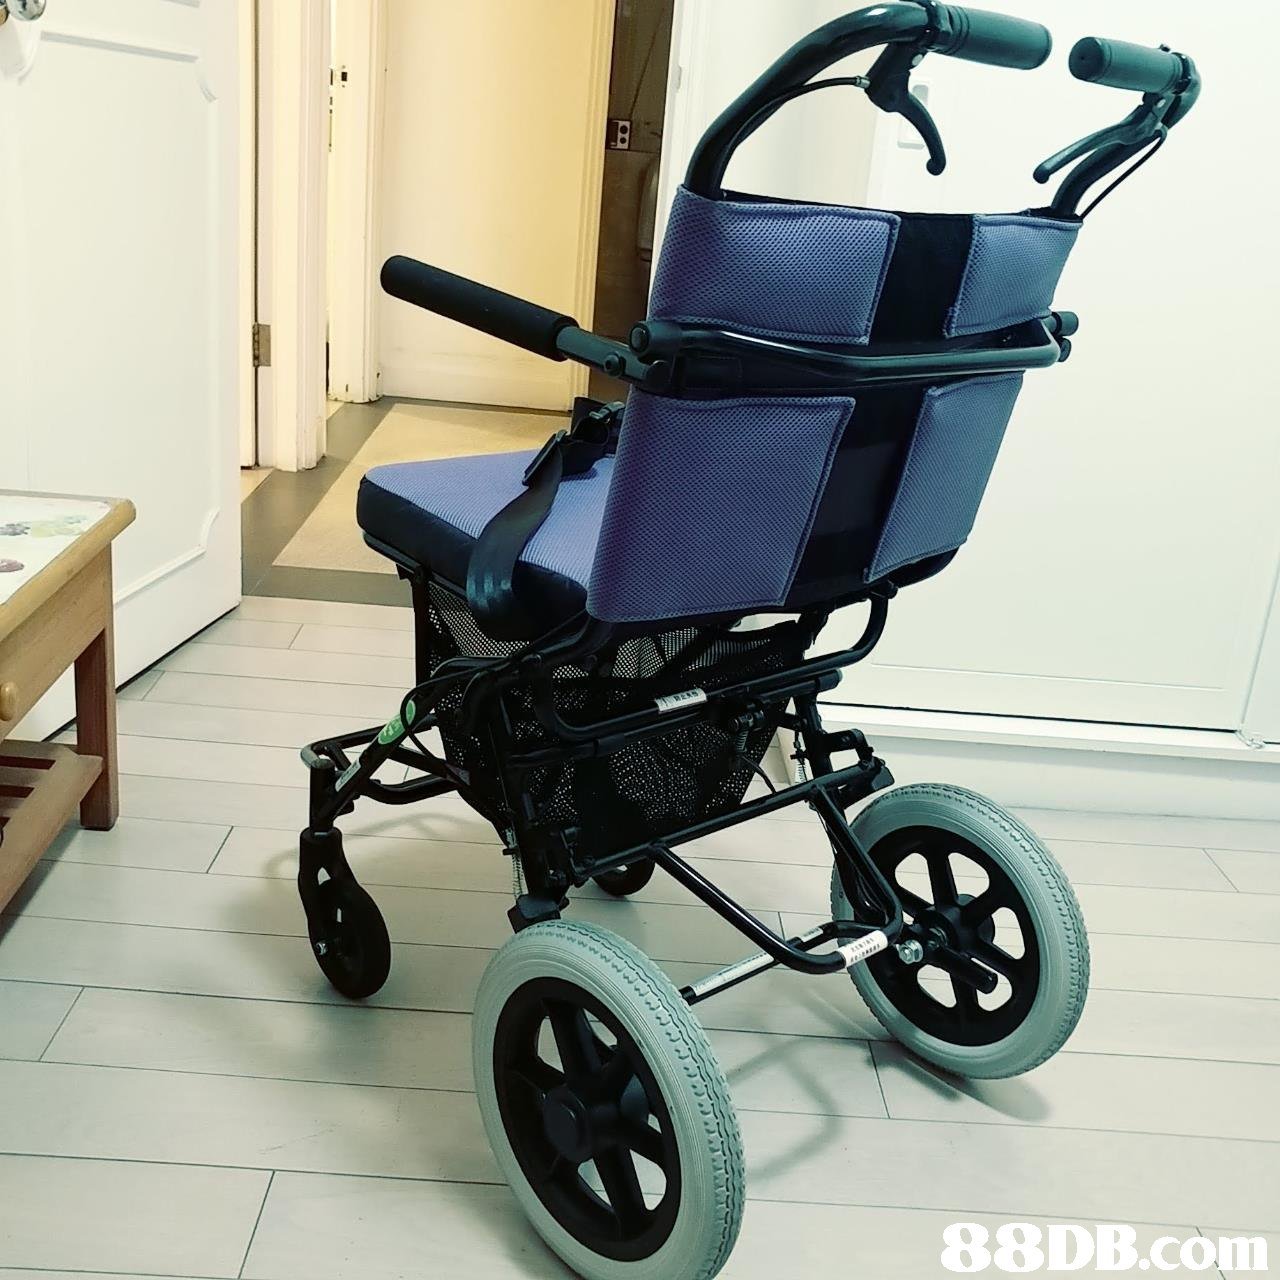 product,wheelchair,baby carriage,baby products,product